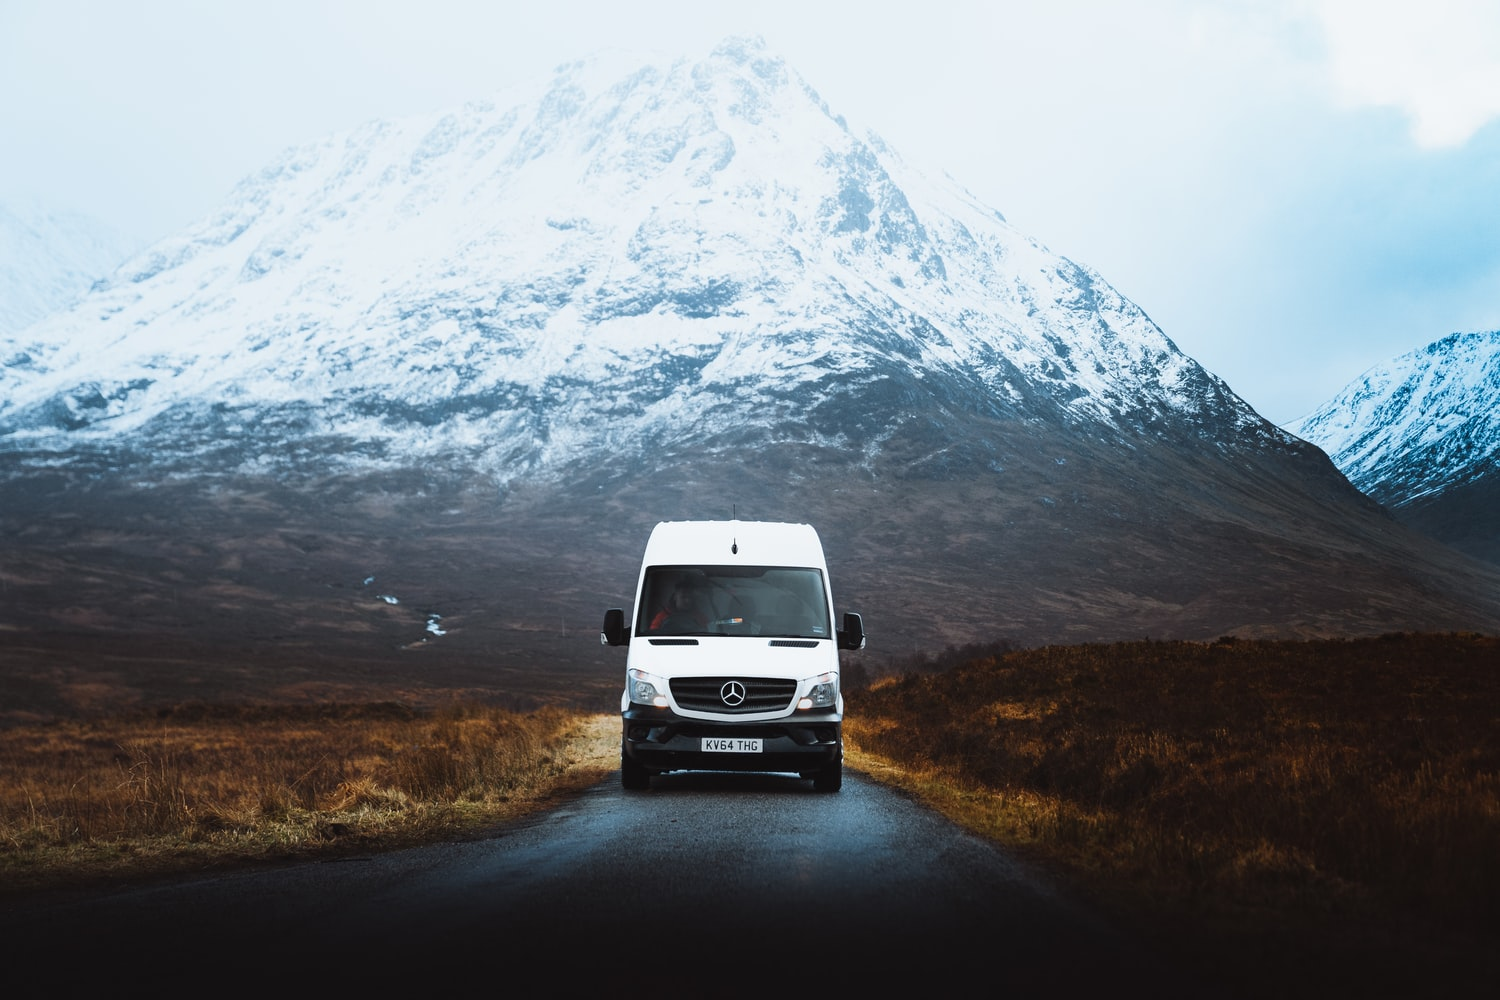 Mercedes Sprinter on a mountain road